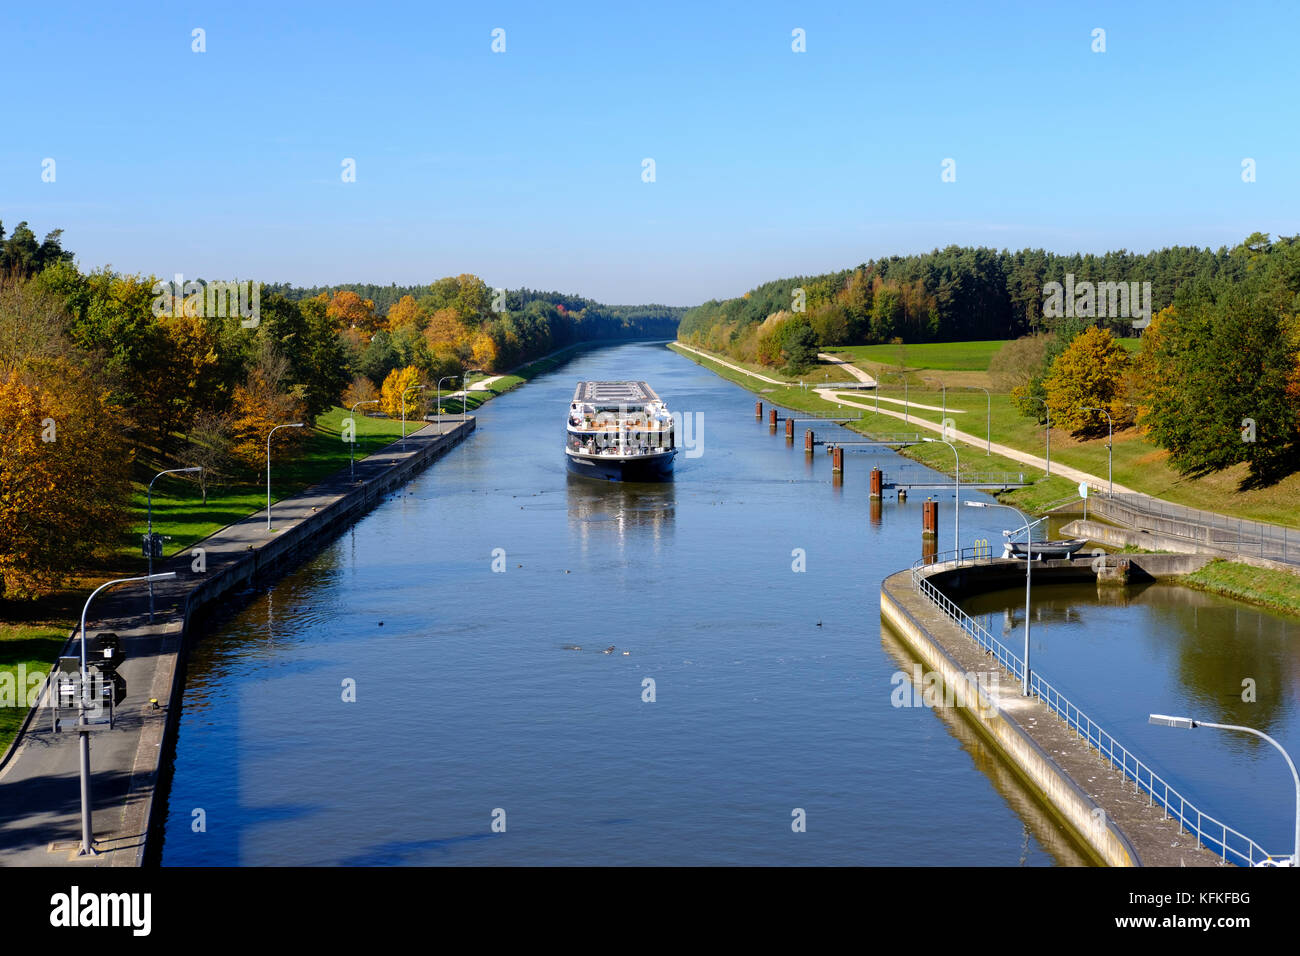 Commit error. Canal cruise danube agree